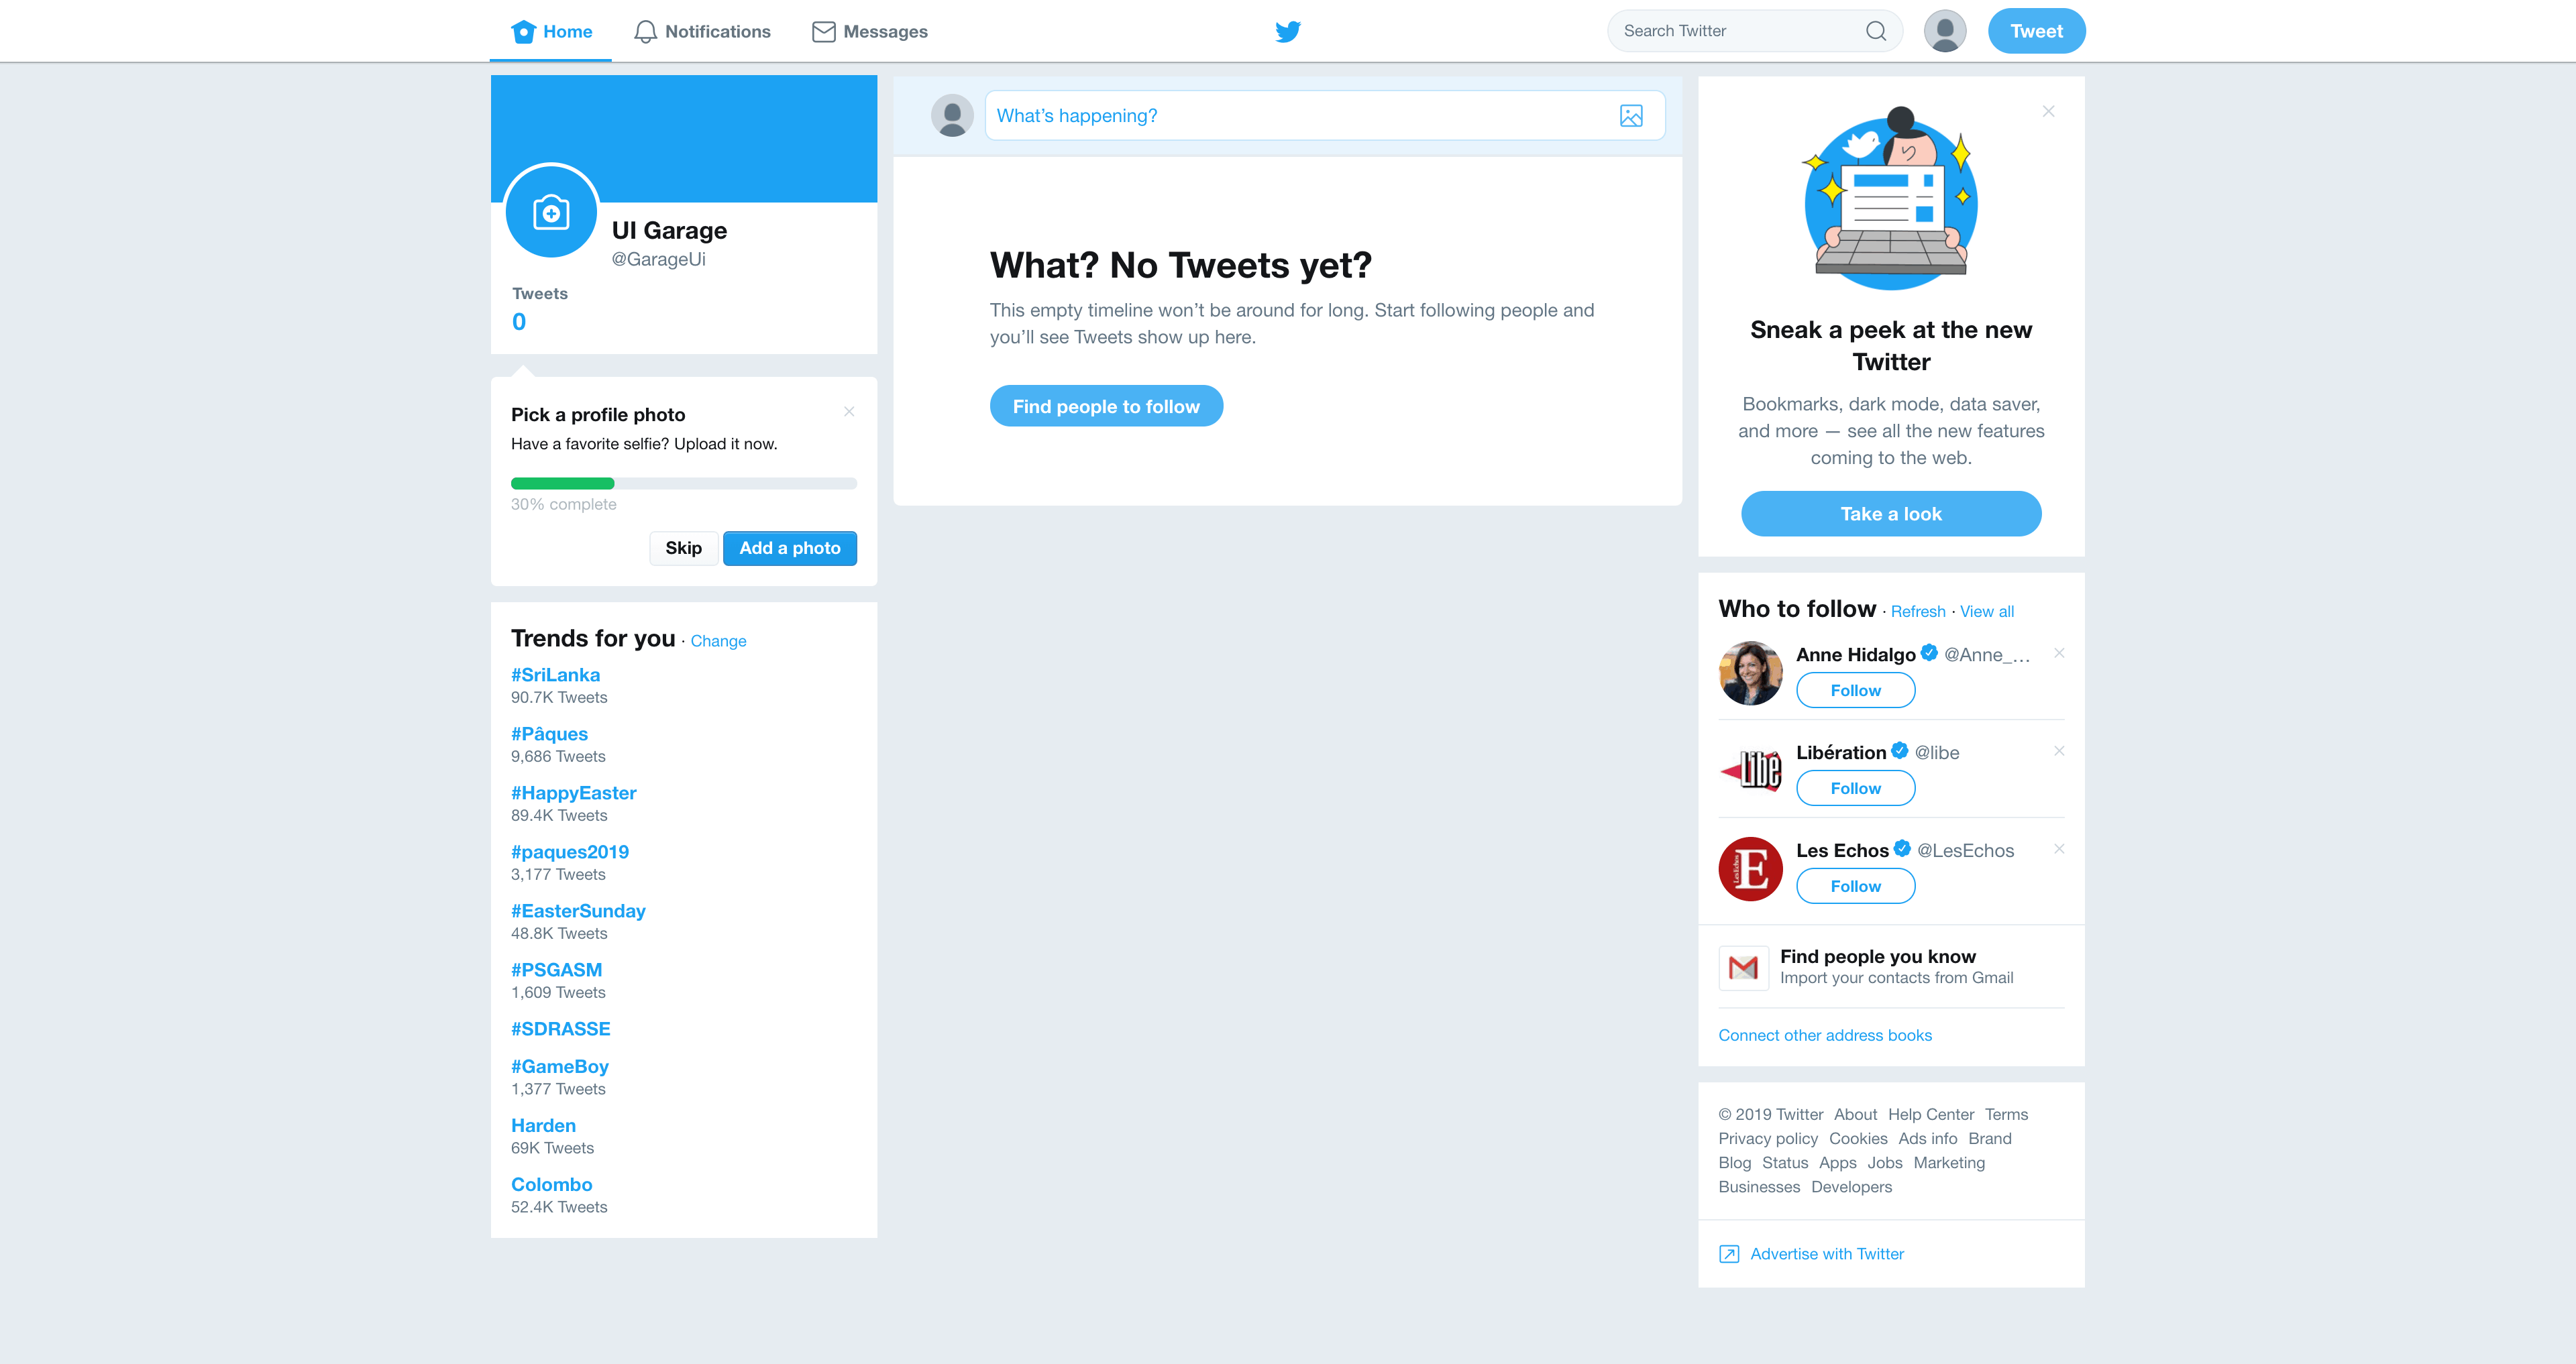 Home Page by Twitter